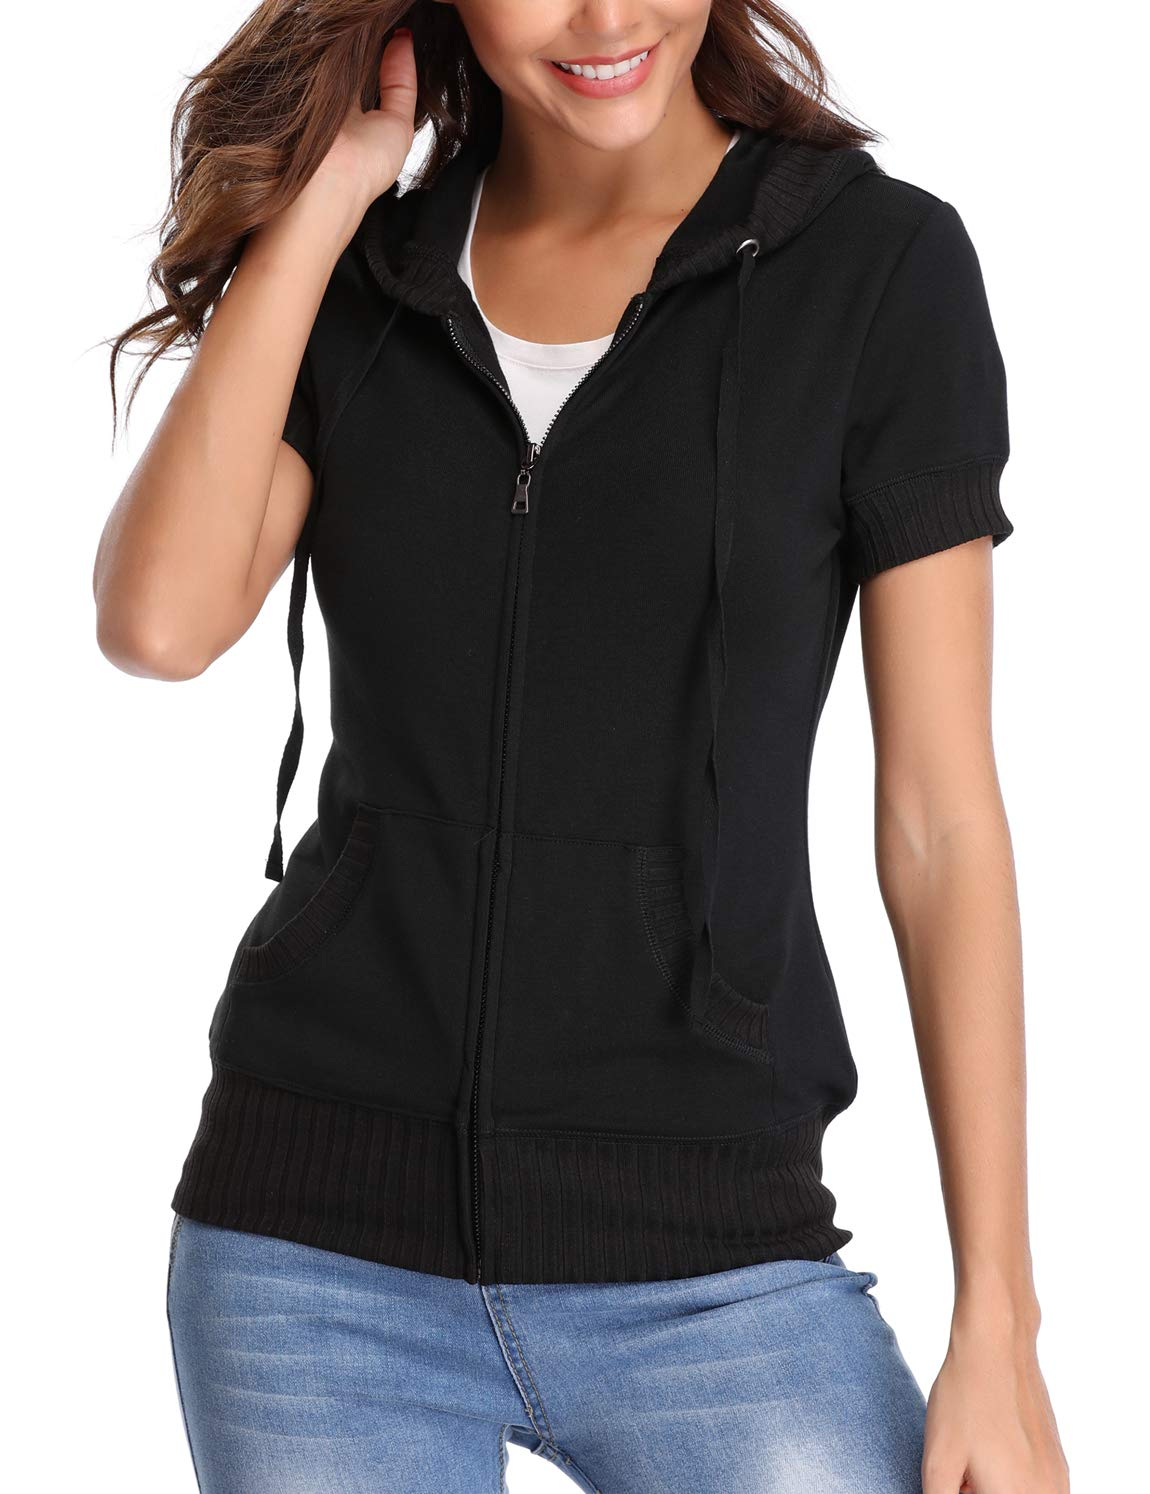 MISS MOLY Summer Hoodie Zip up Short Sleeve Jacket for Women Thin Sweater Coat Casual/Fashion